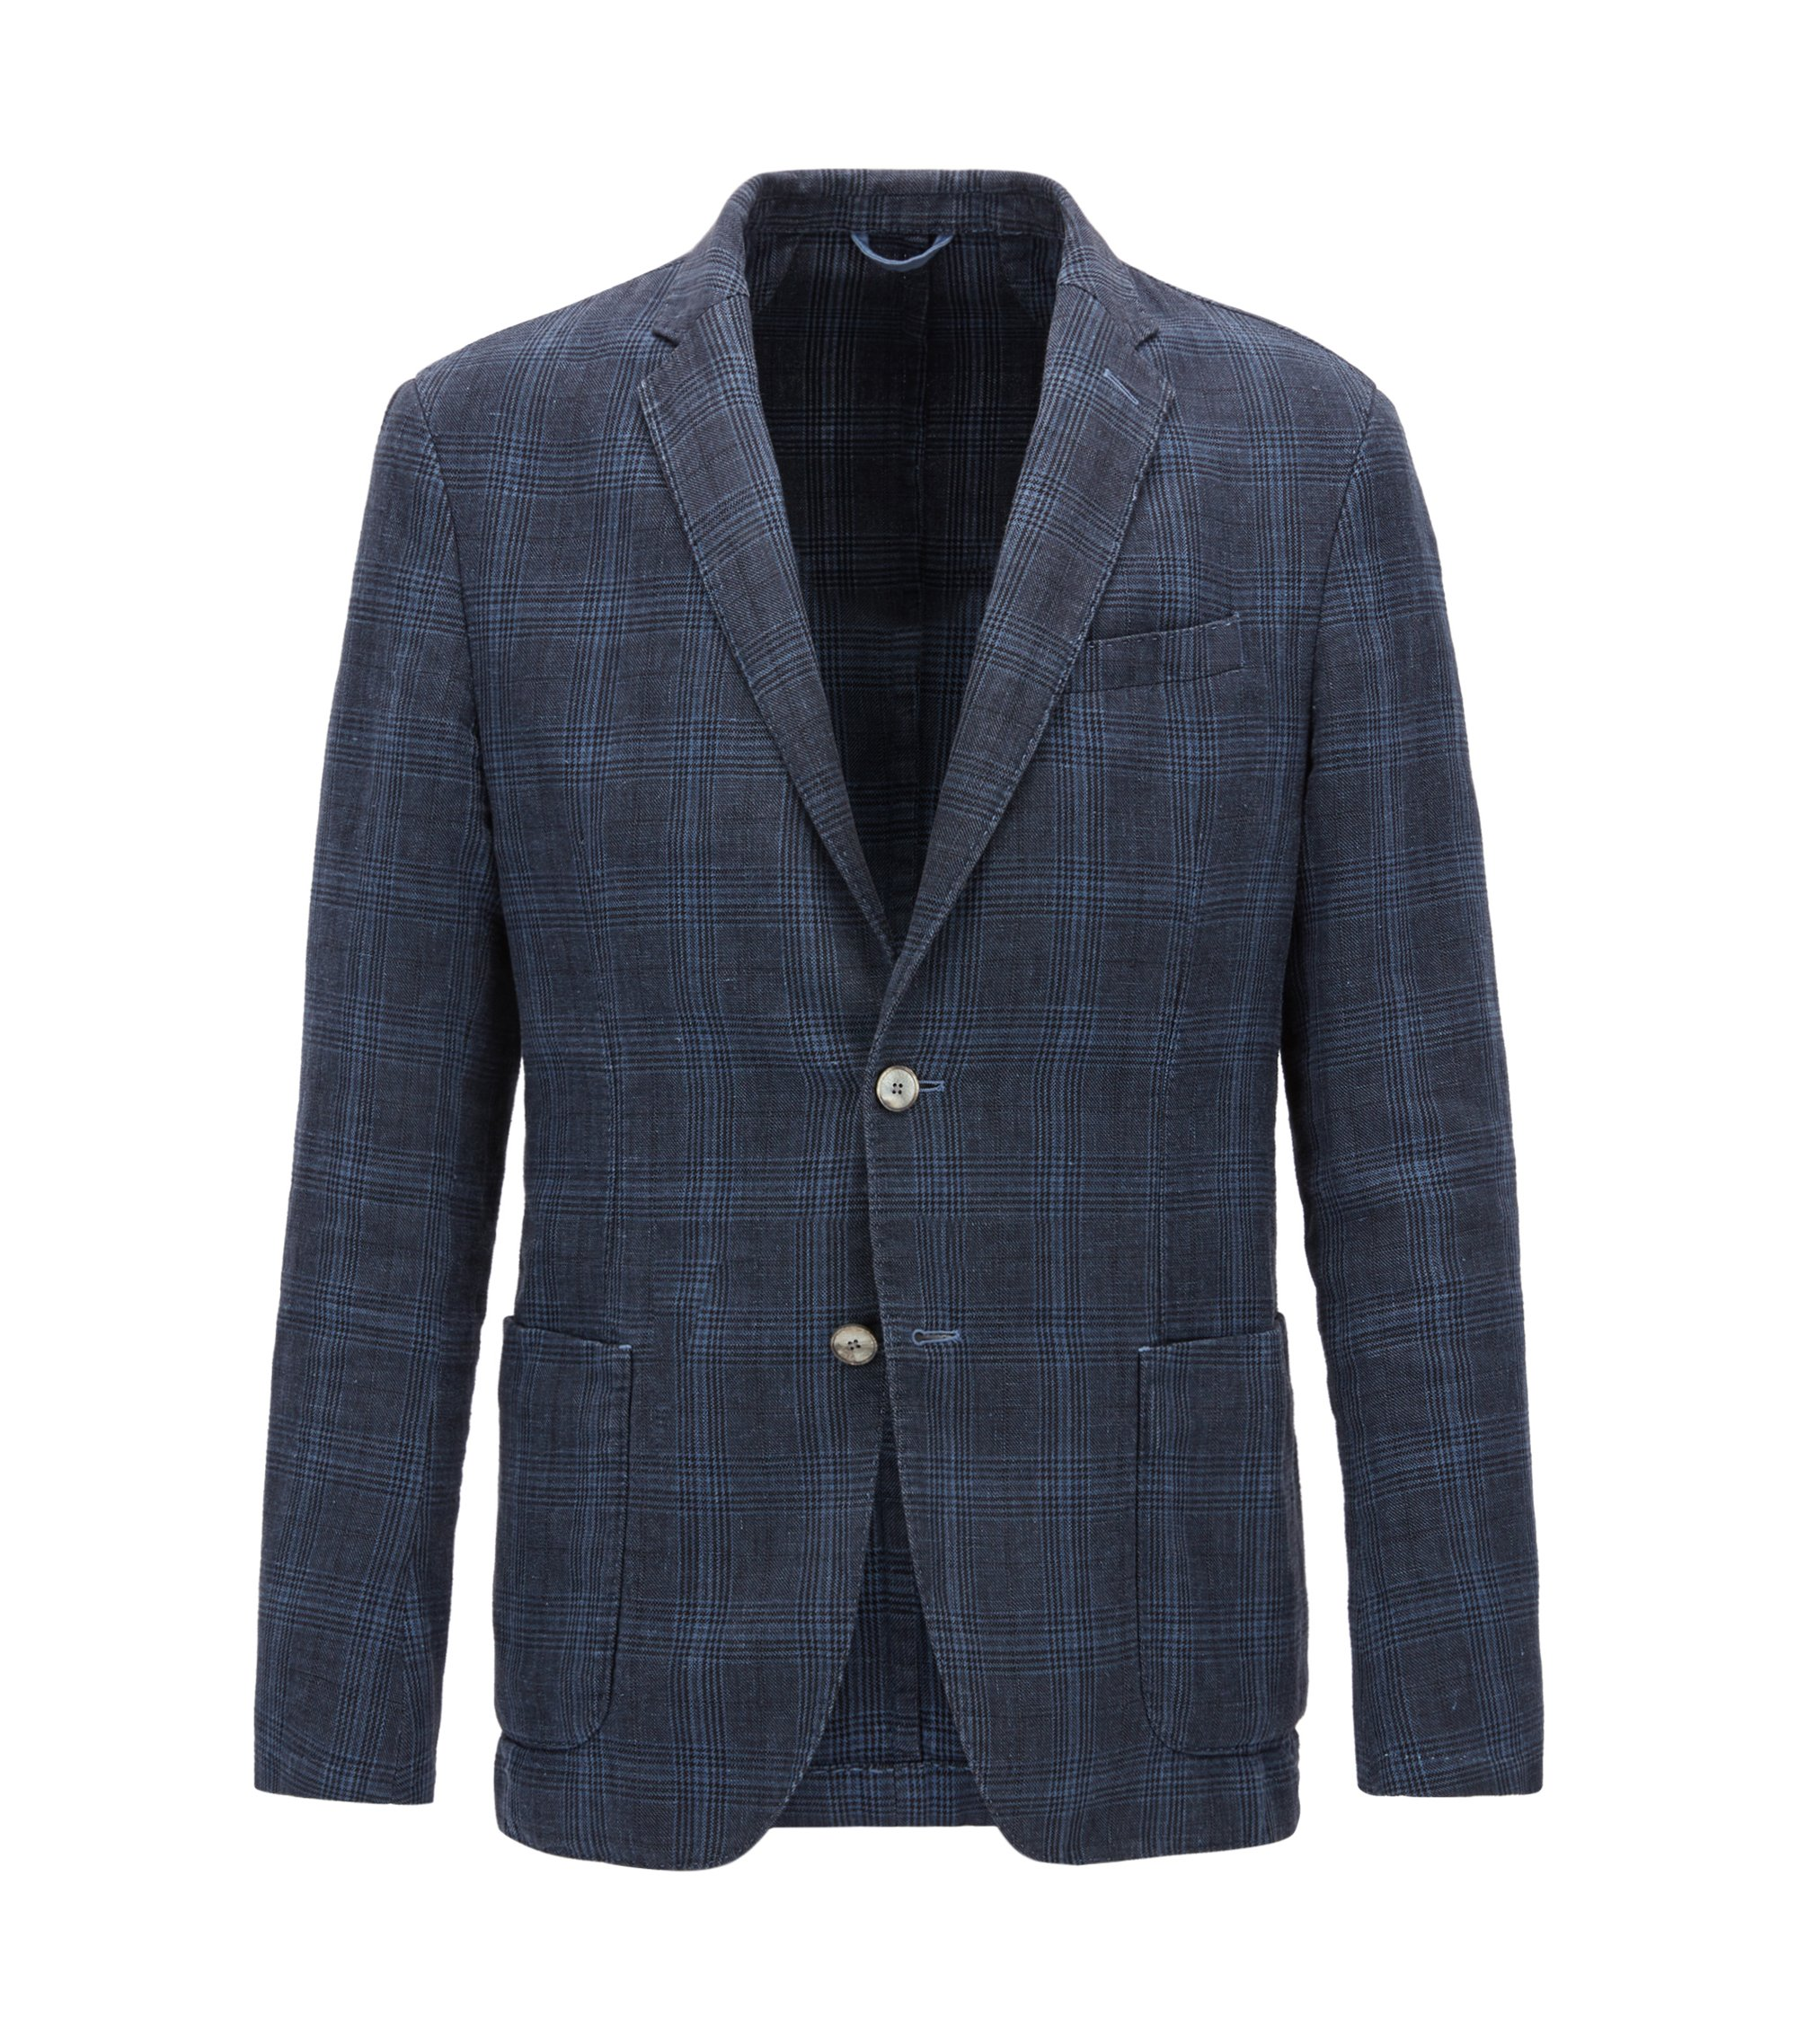 Slim-fit jacket in checked cotton and linen, Open Blue